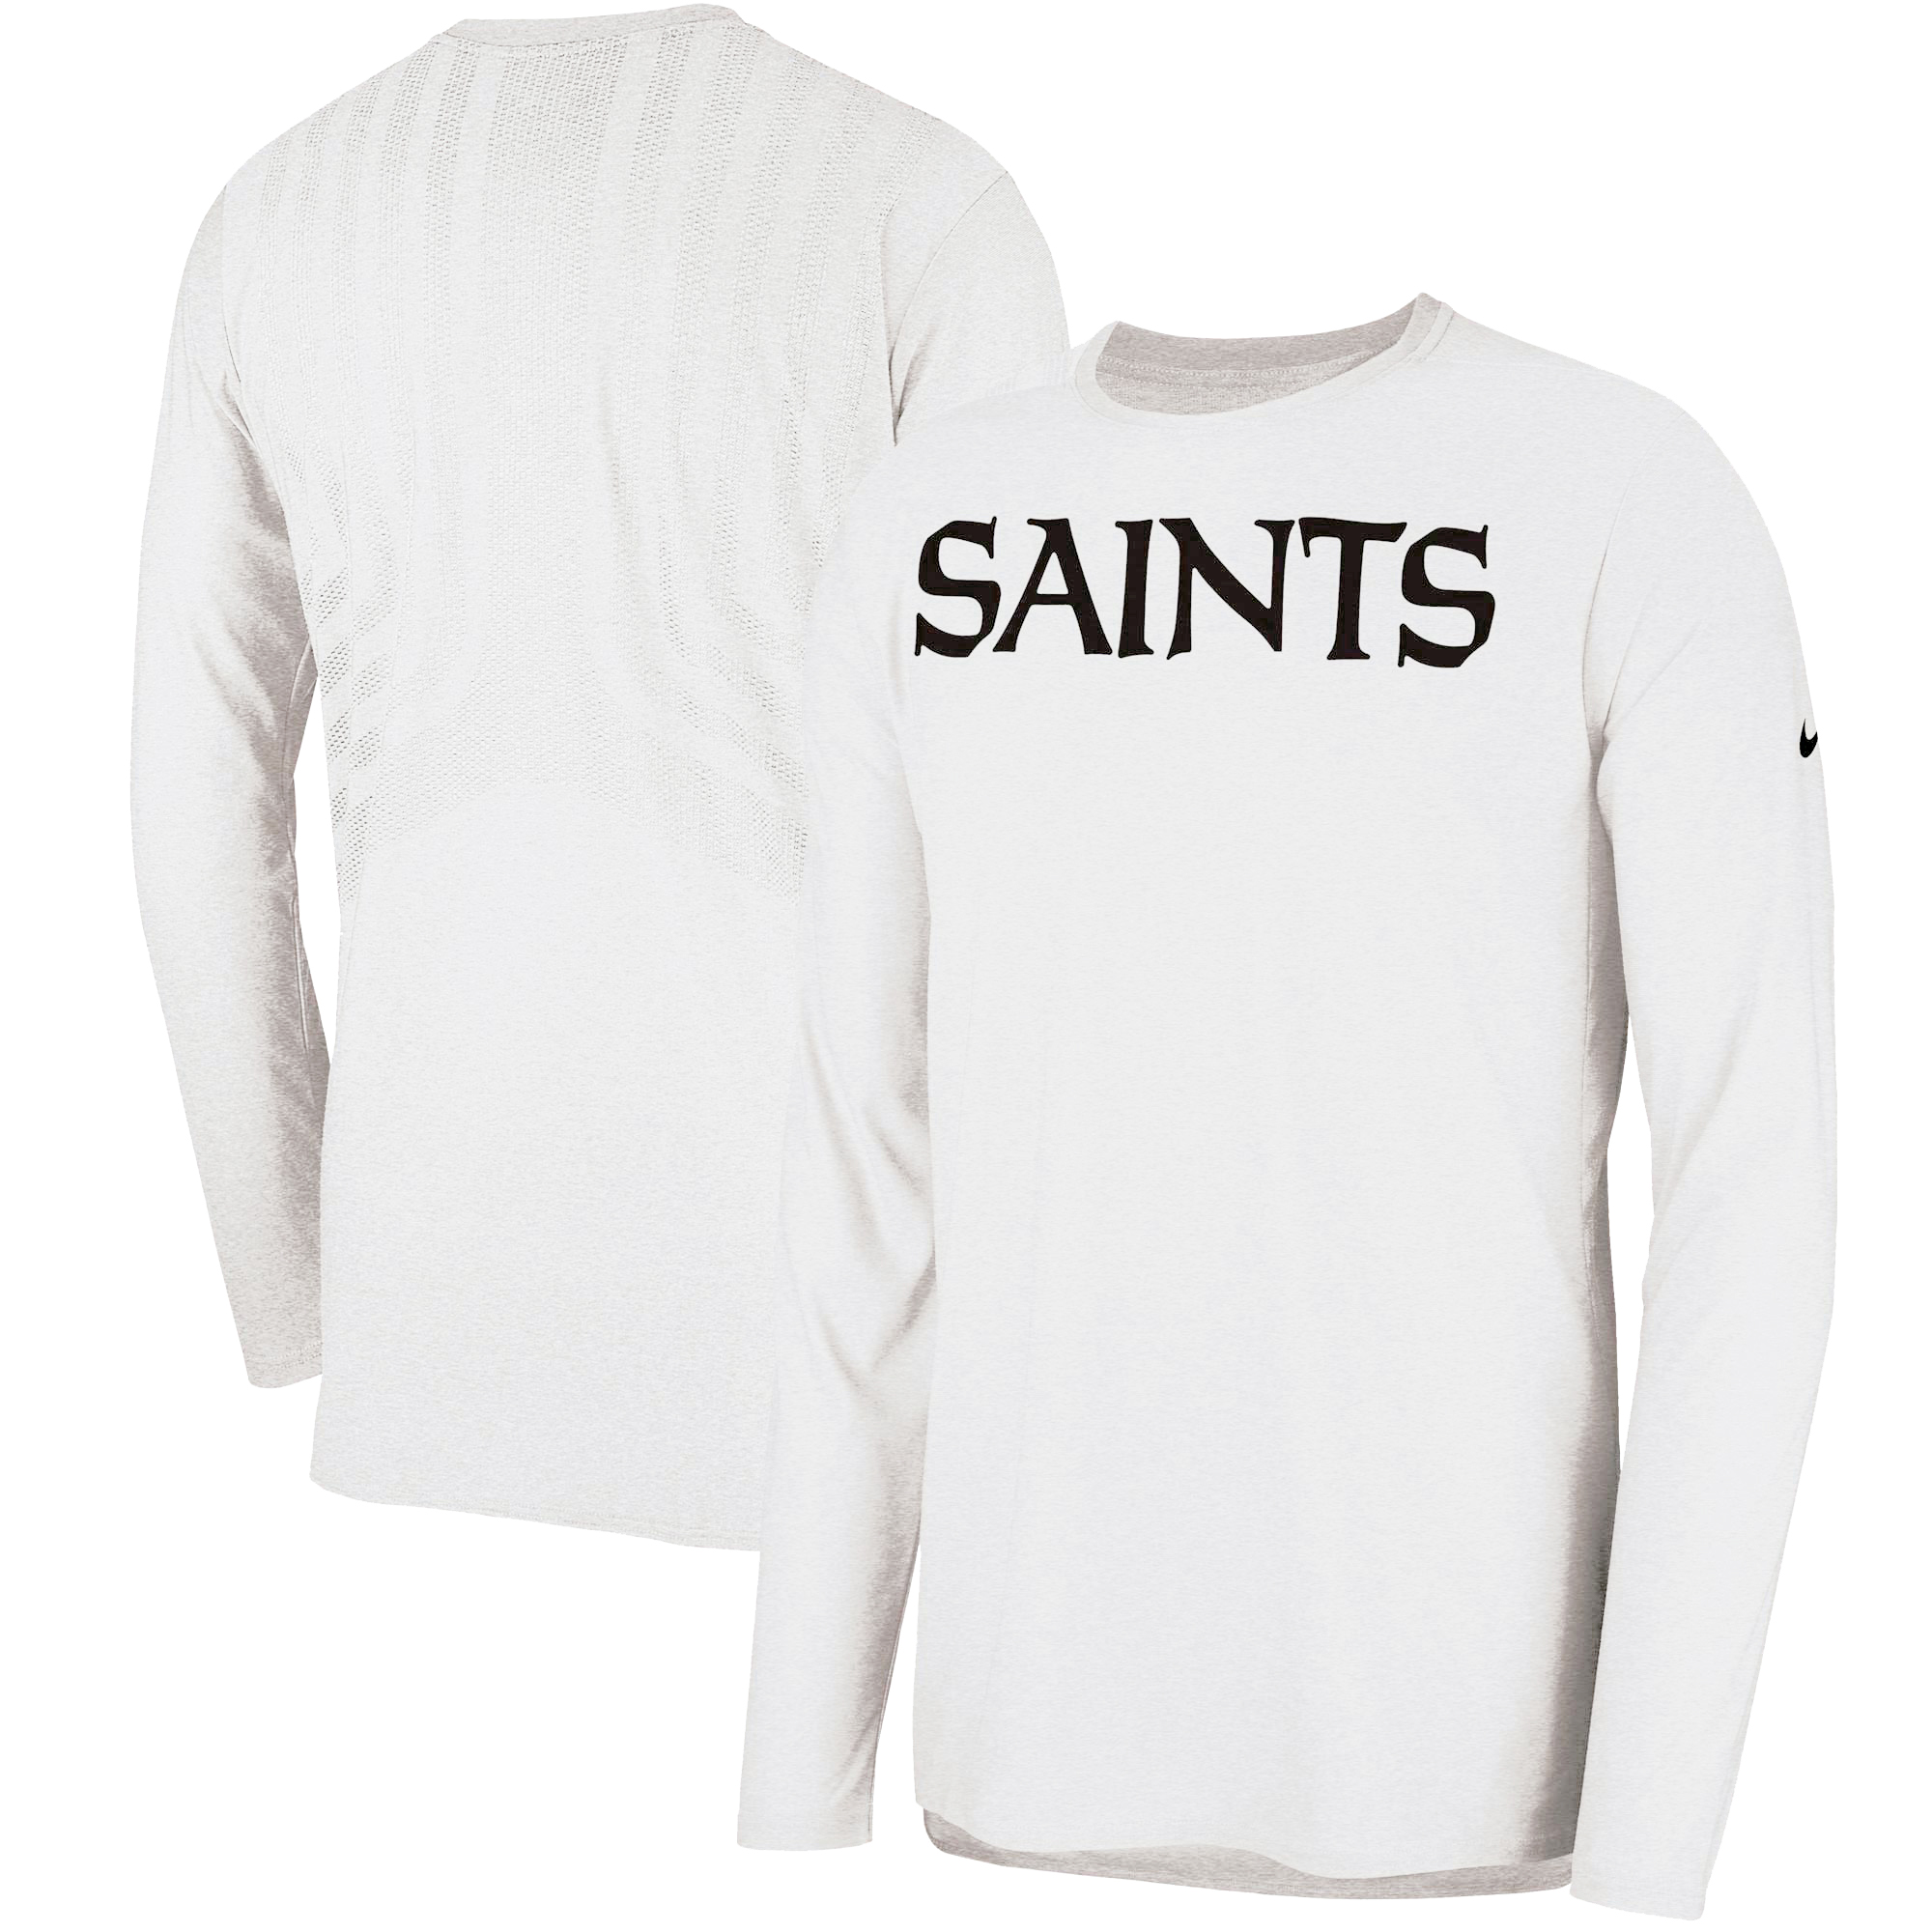 promo code 427eb 4df85 New Orleans Saints Nike Sideline Player Long Sleeve T-Shirt - White